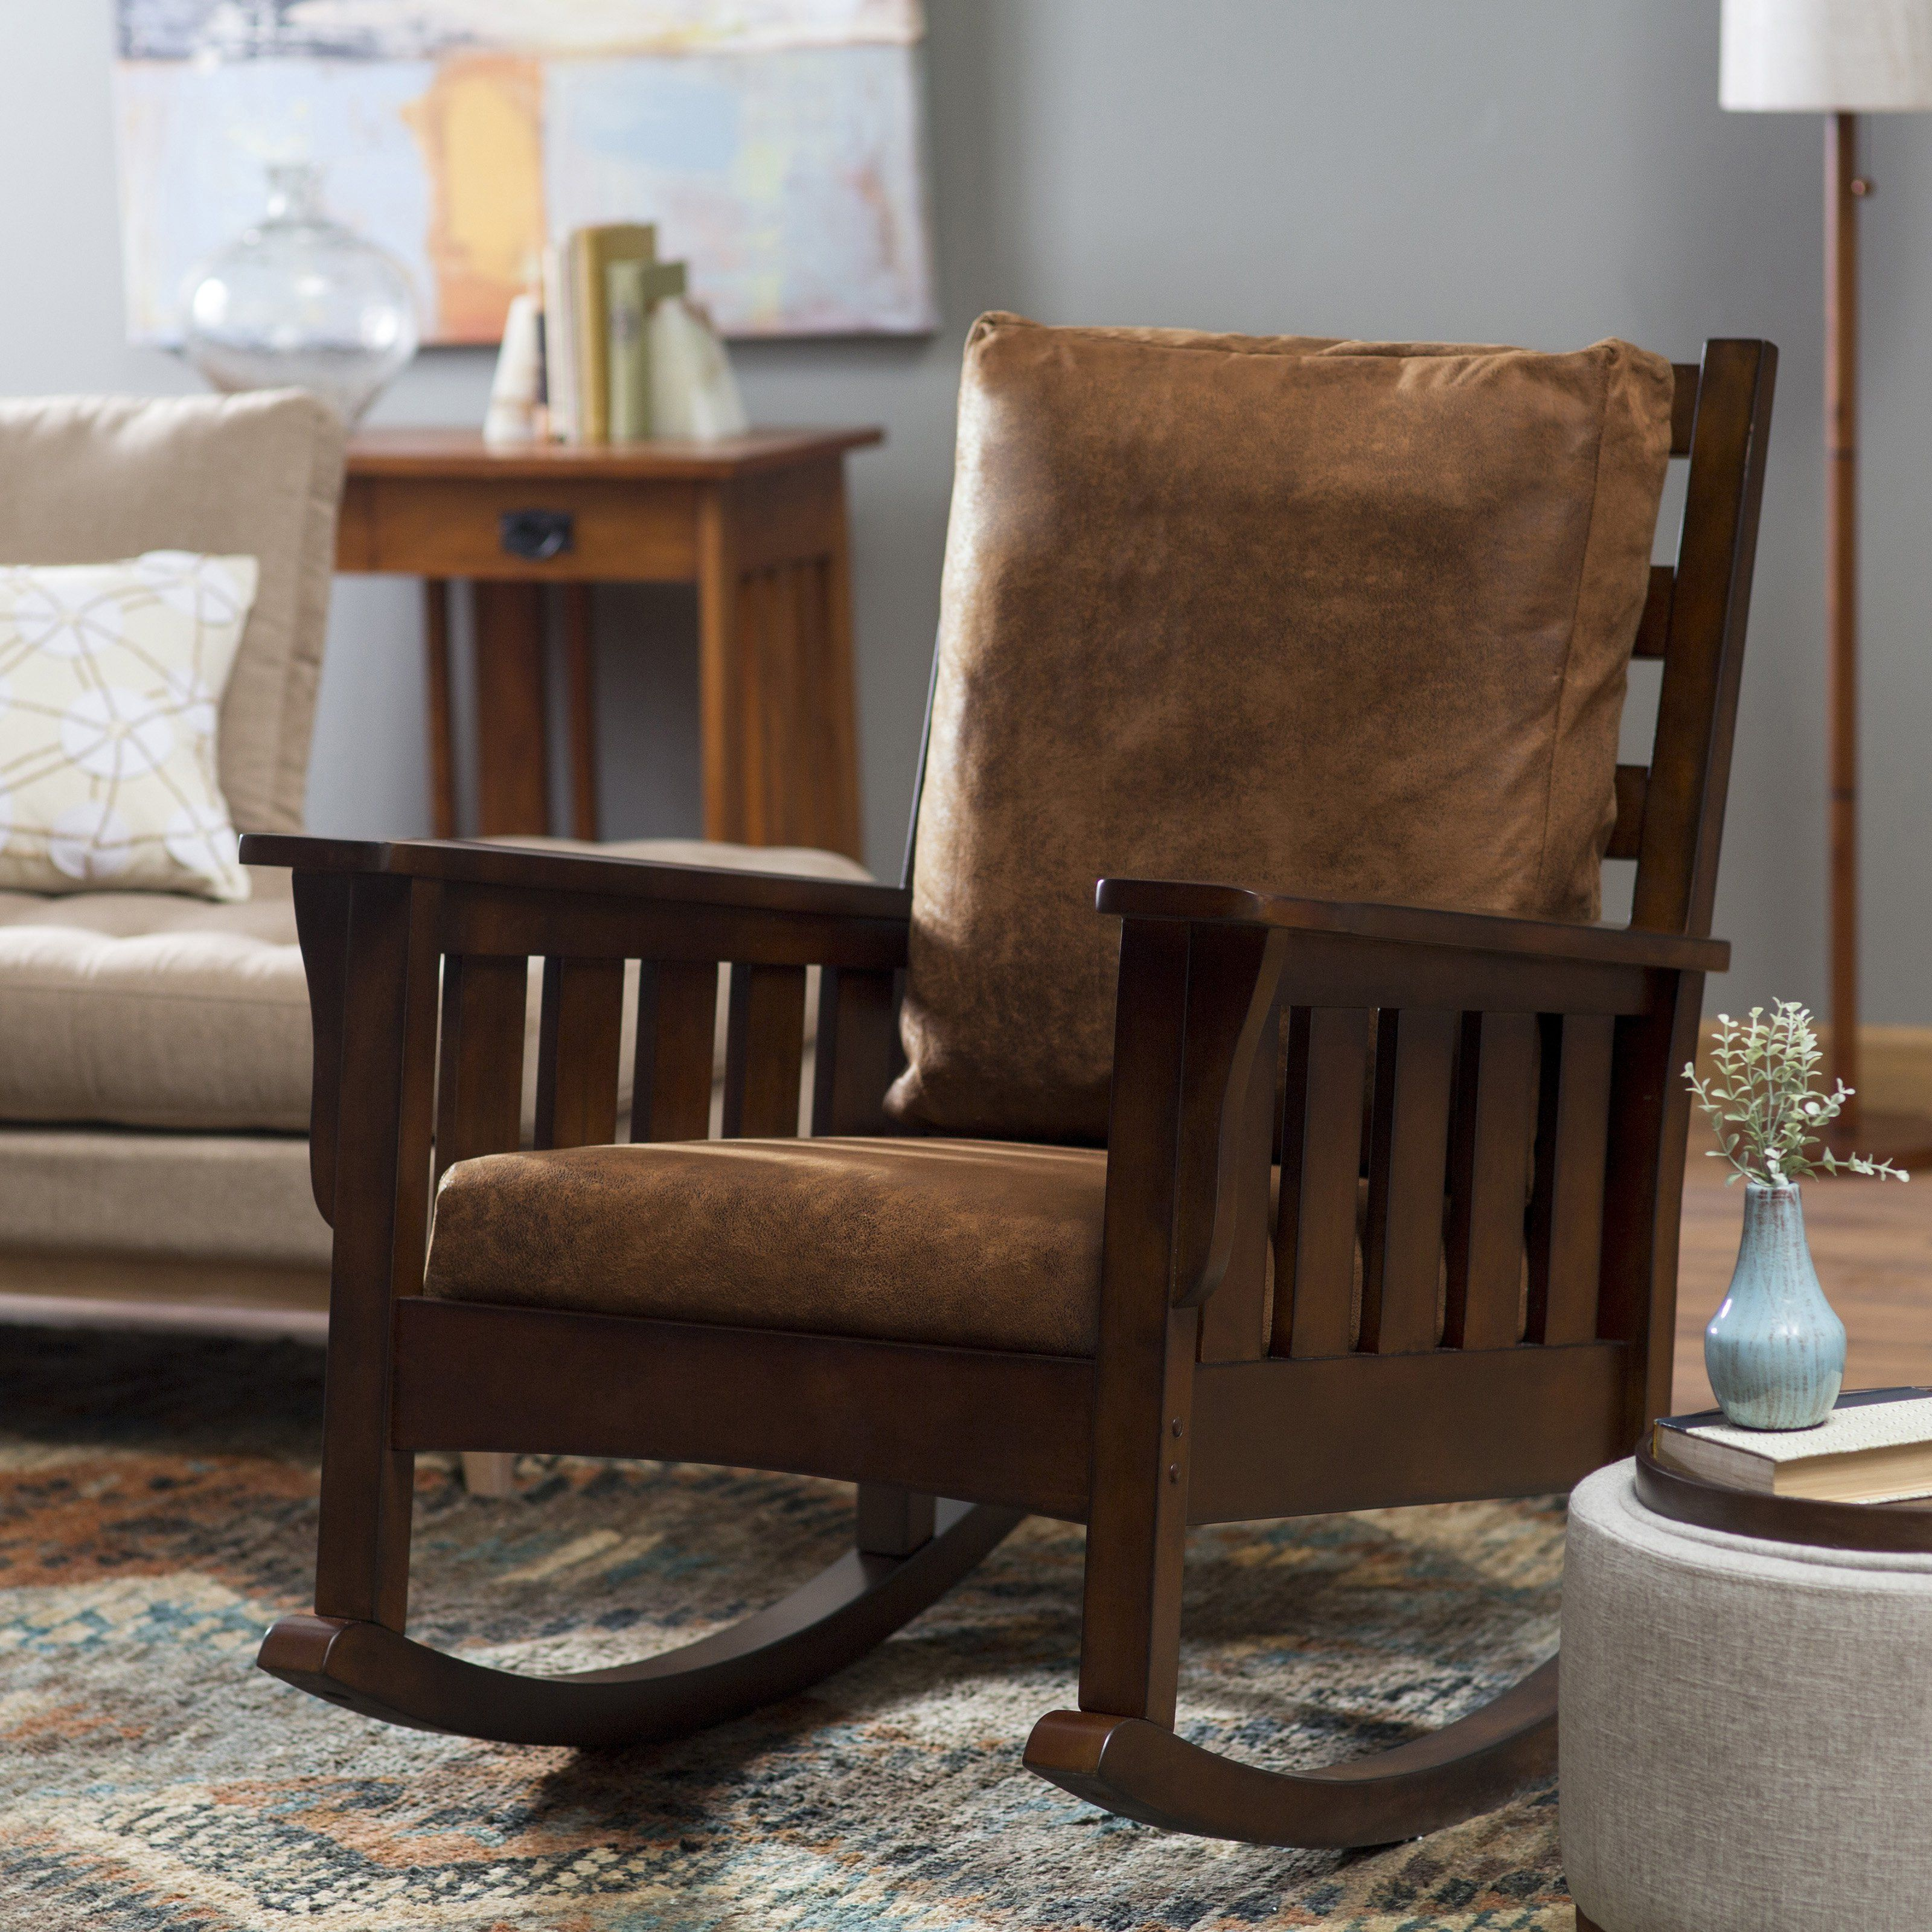 Belham Living Remington Mission Rocker   Walnut   With A Chair This  Comfortable, Youu0027